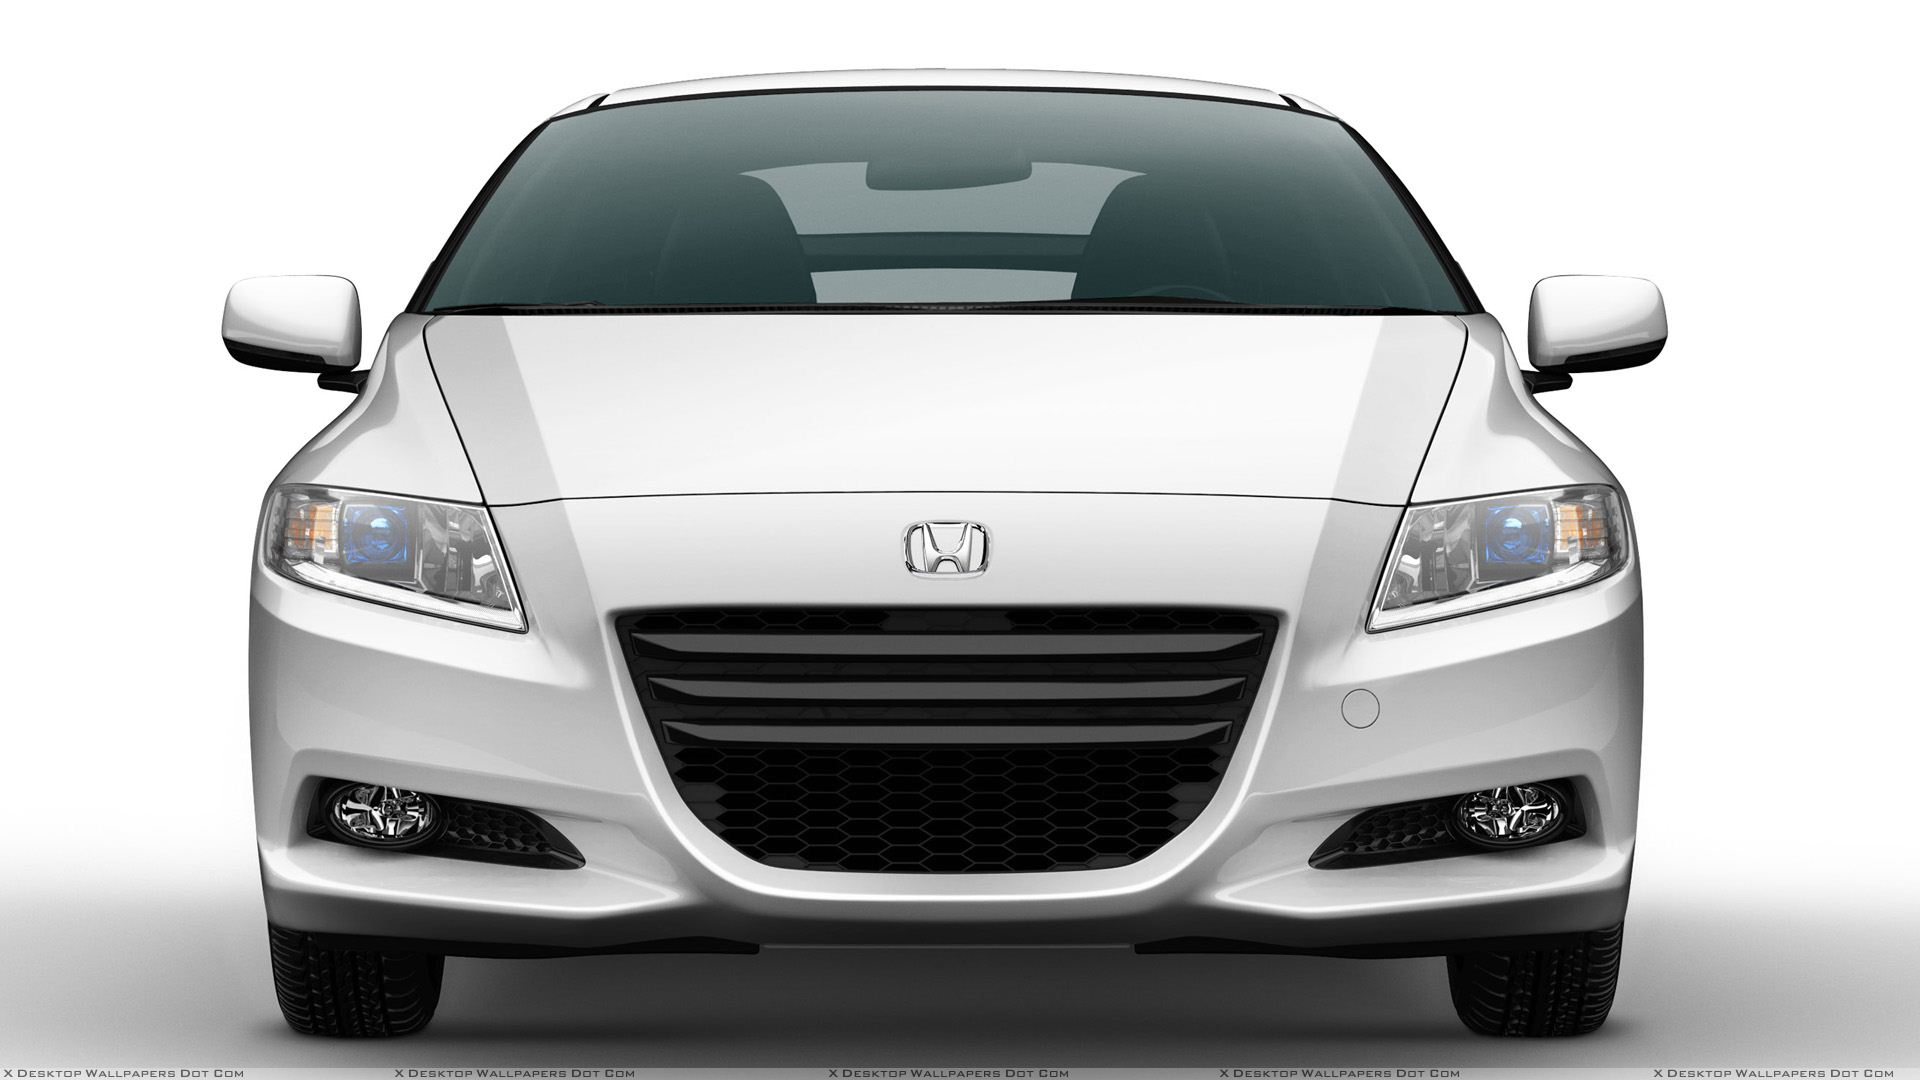 Front Pose Of 2011 Honda Cr Z Sport Hybrid Coupe In White Wallpaper Si Engine Diagram You